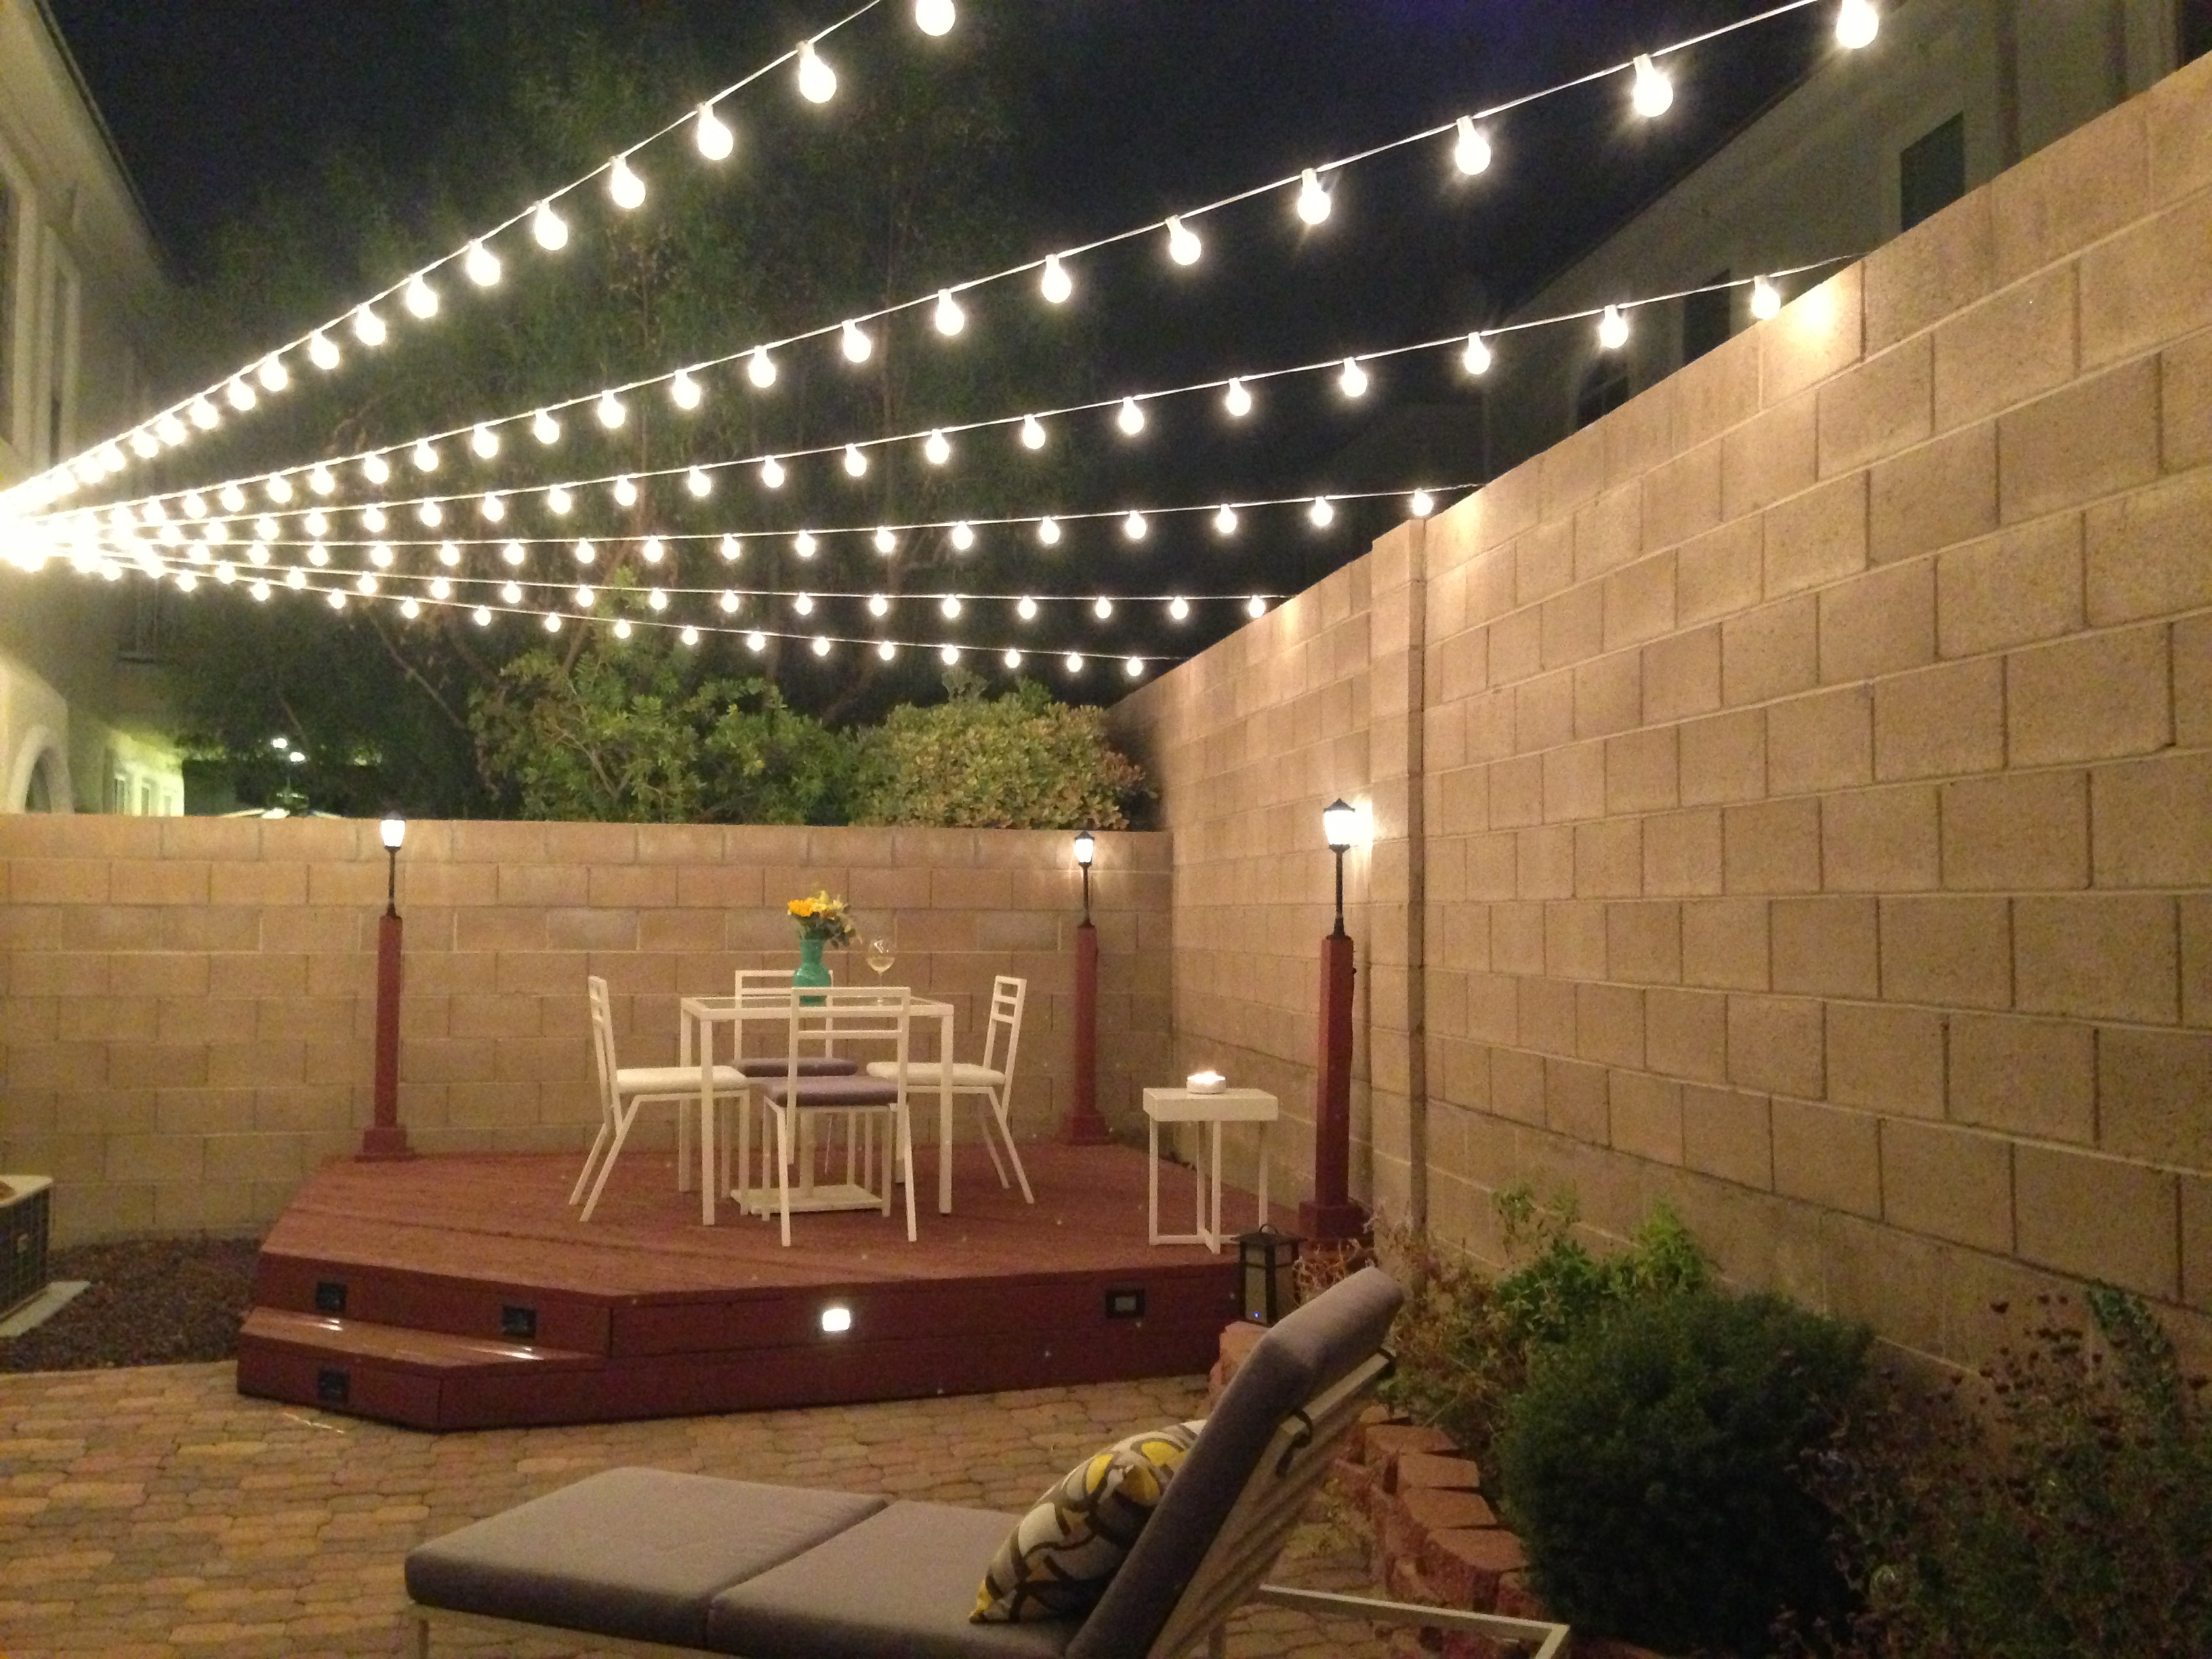 Las Vegas Backyard Model Captivating Backyard Schemes  Las Vegas Wedding Planner  Las Vegas Weddings Design Ideas